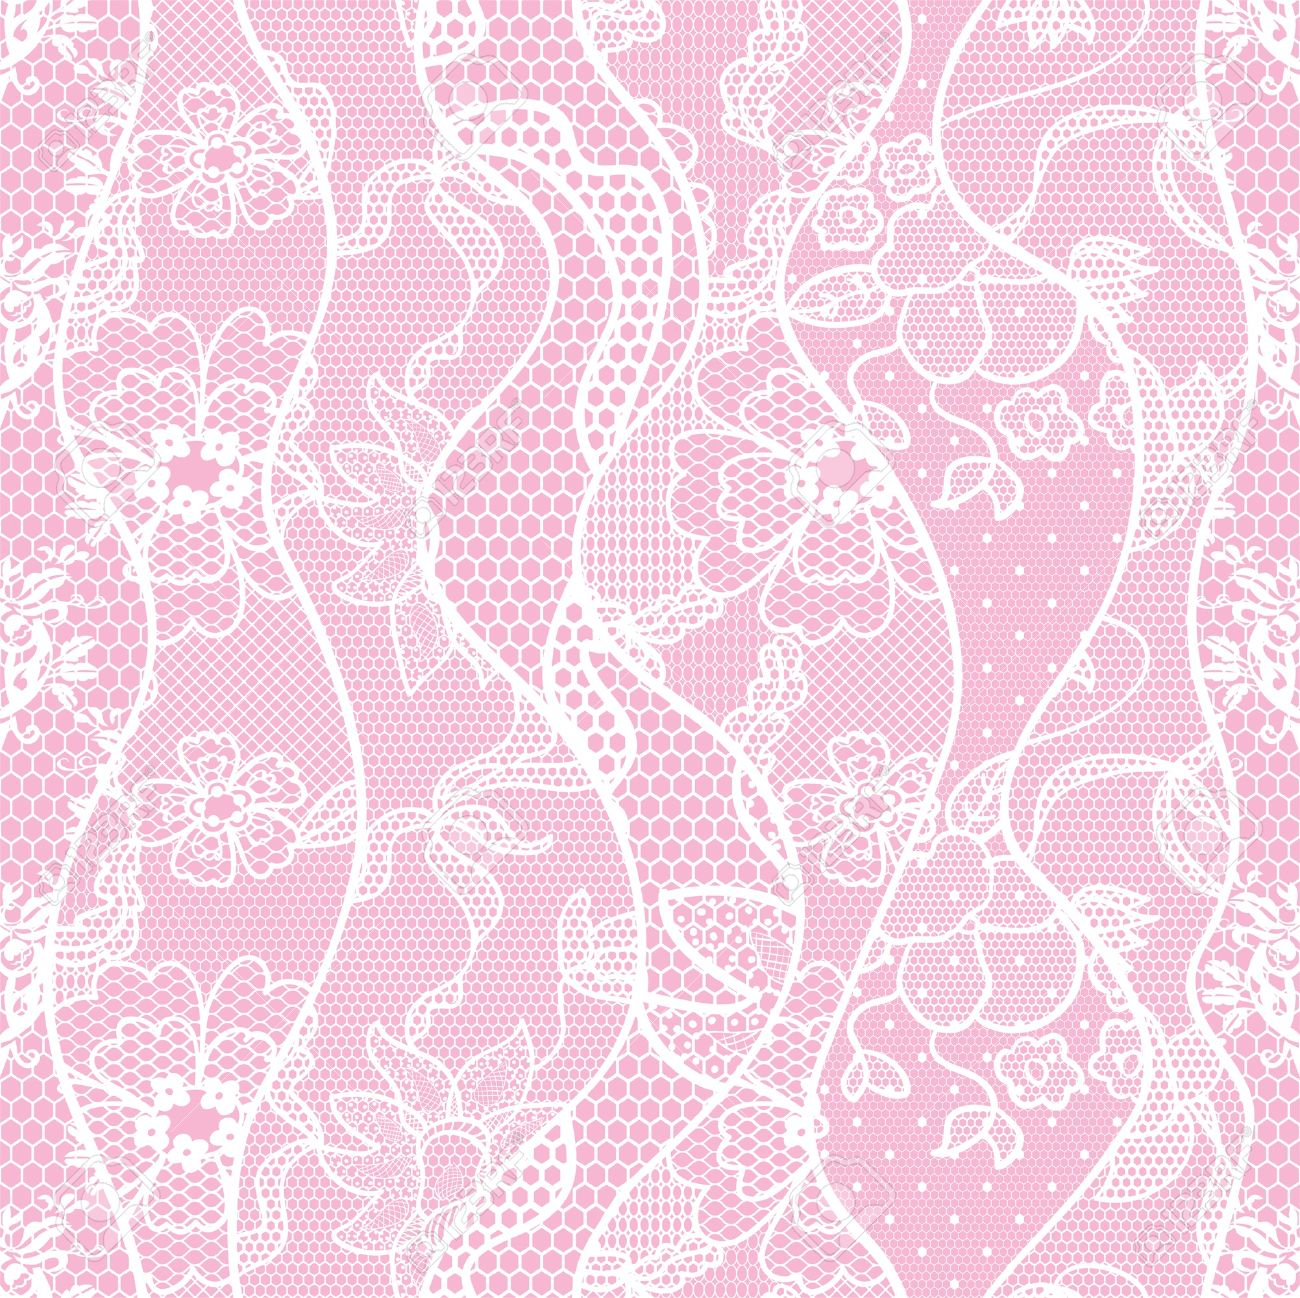 Lace Seamless Pattern With Flowers On Pink Background Royalty Free